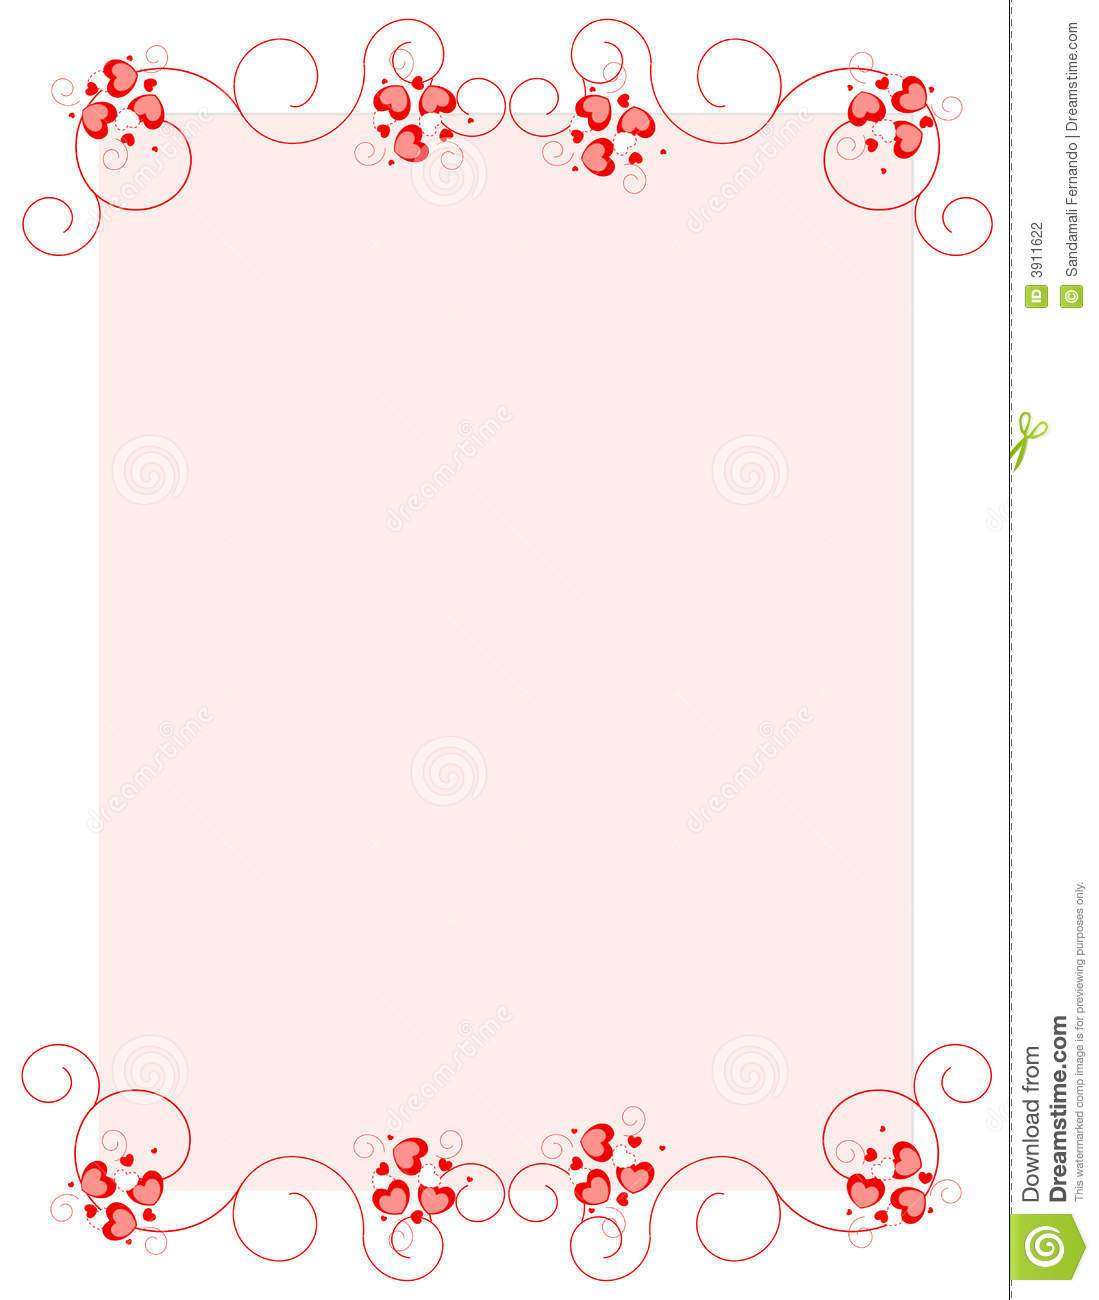 Valentine's Day / Holiday /Love background.. with red hearts.. for ...